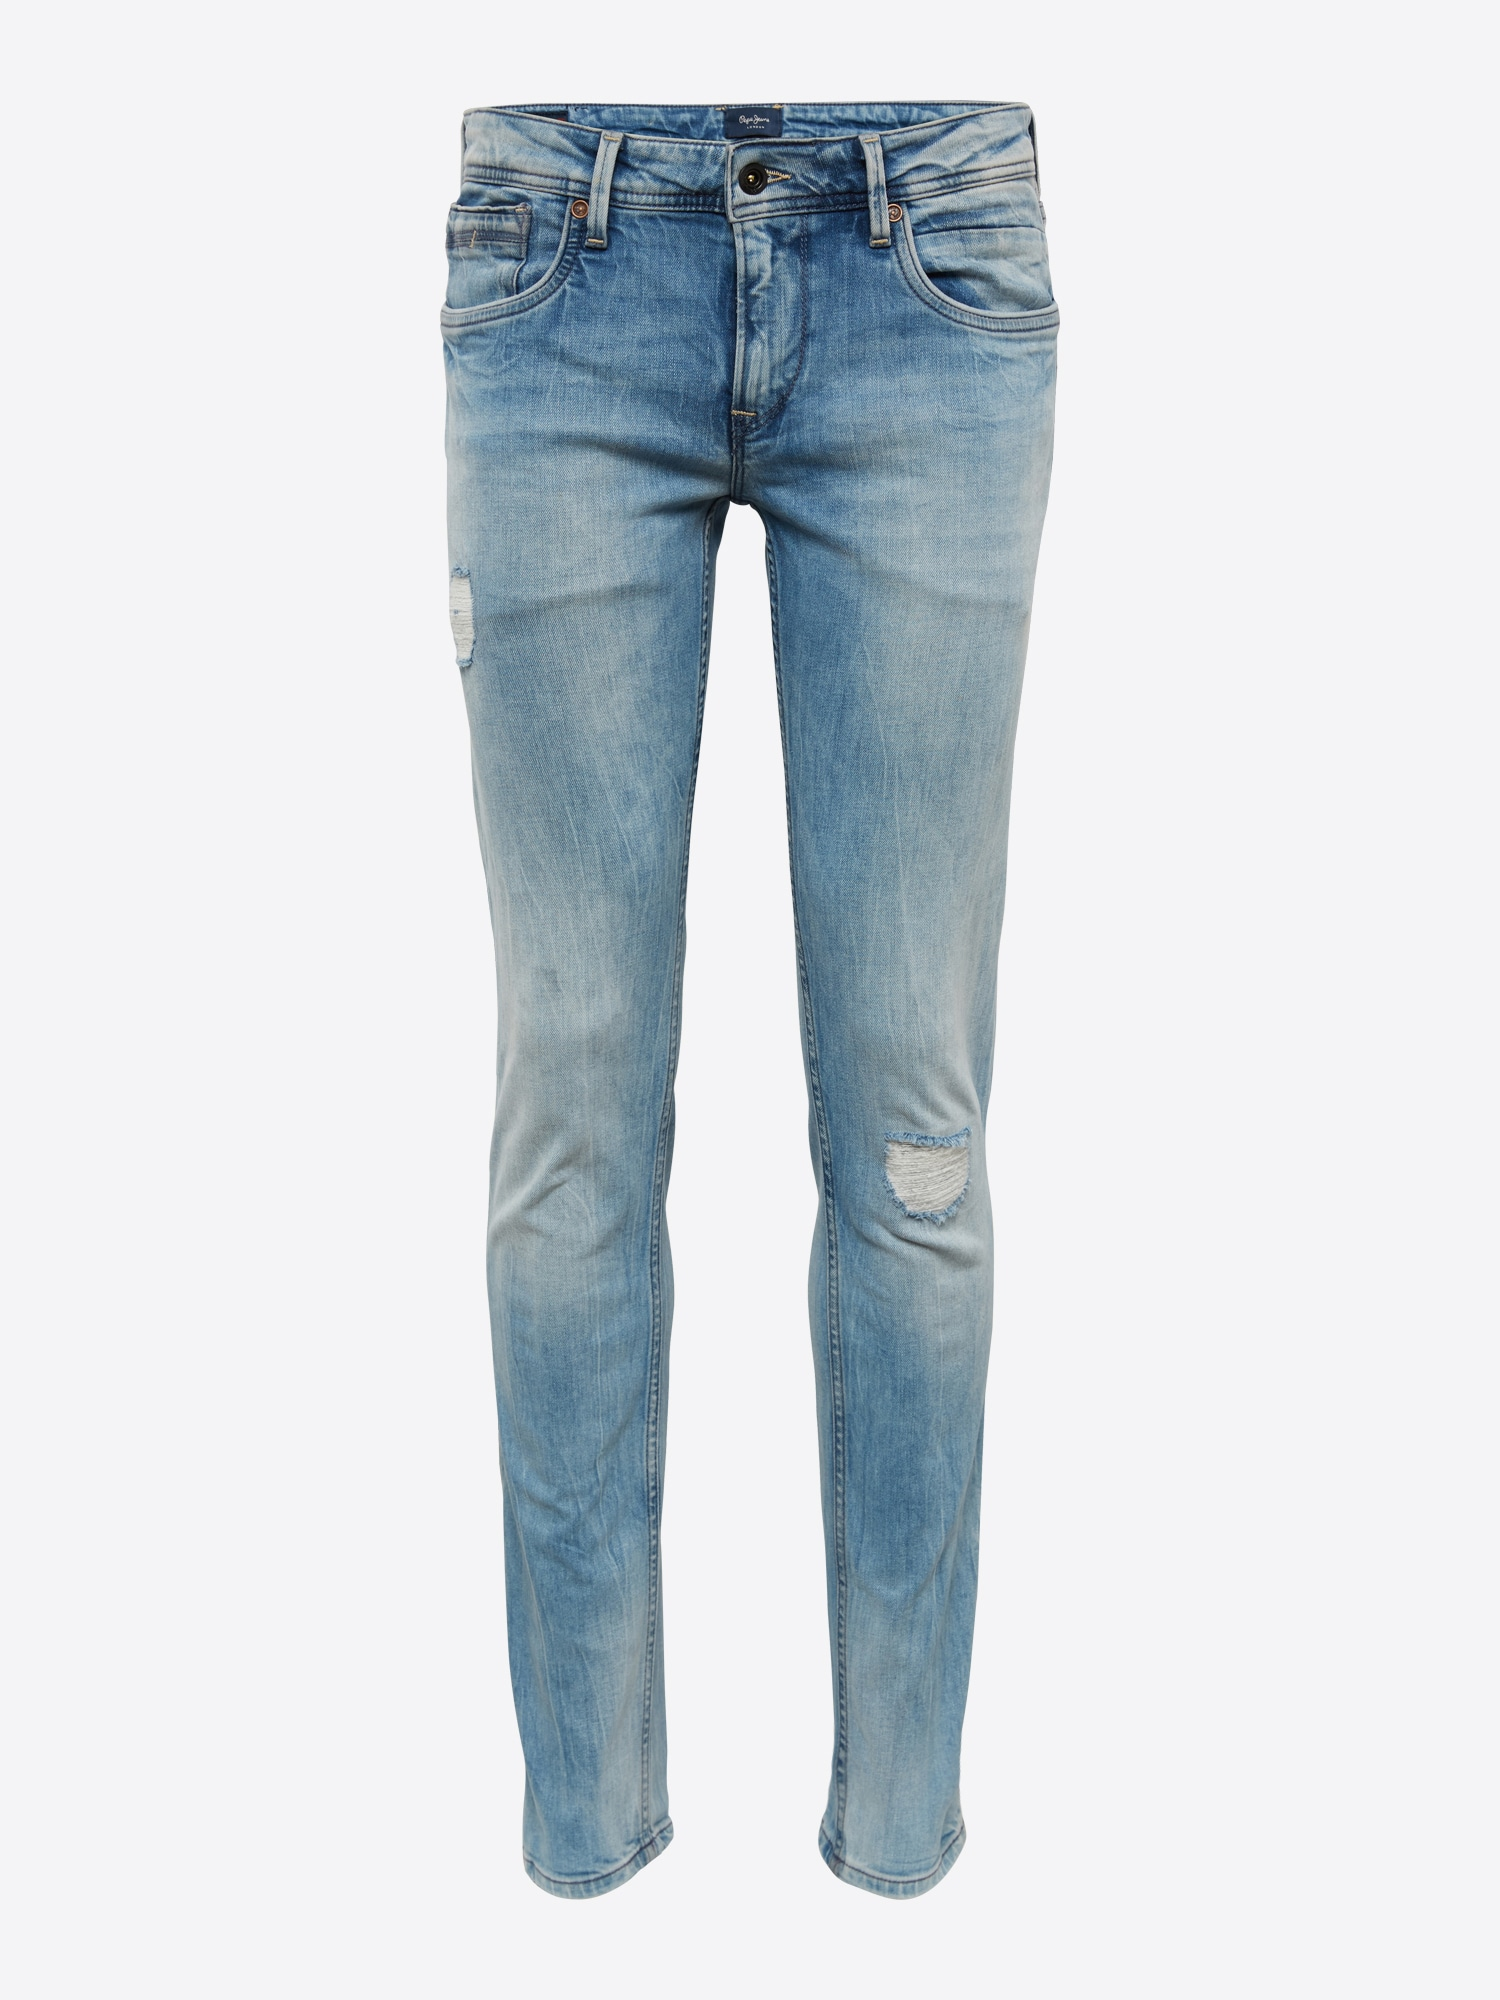 Pepe Jeans, Herren Jeans Hatch Sharp, blauw denim